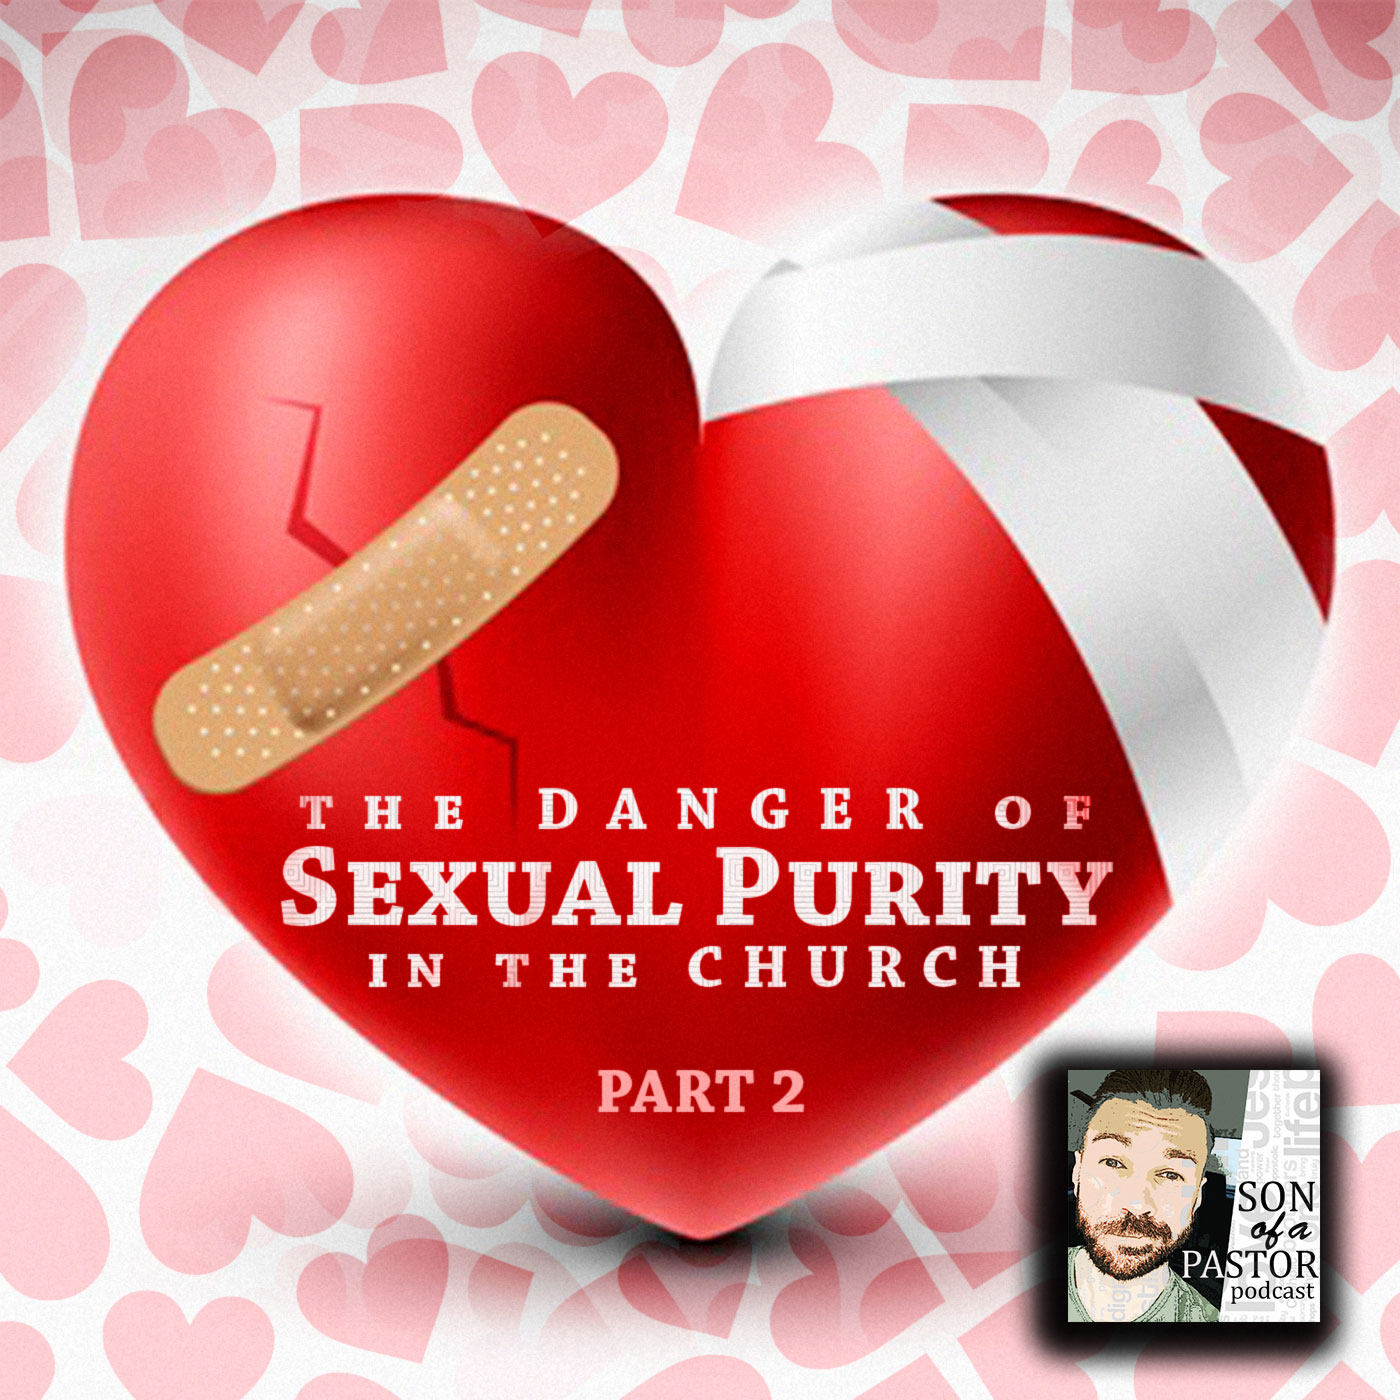 The Danger of Sexual Purity in the Church (Part 2) - Episode 27